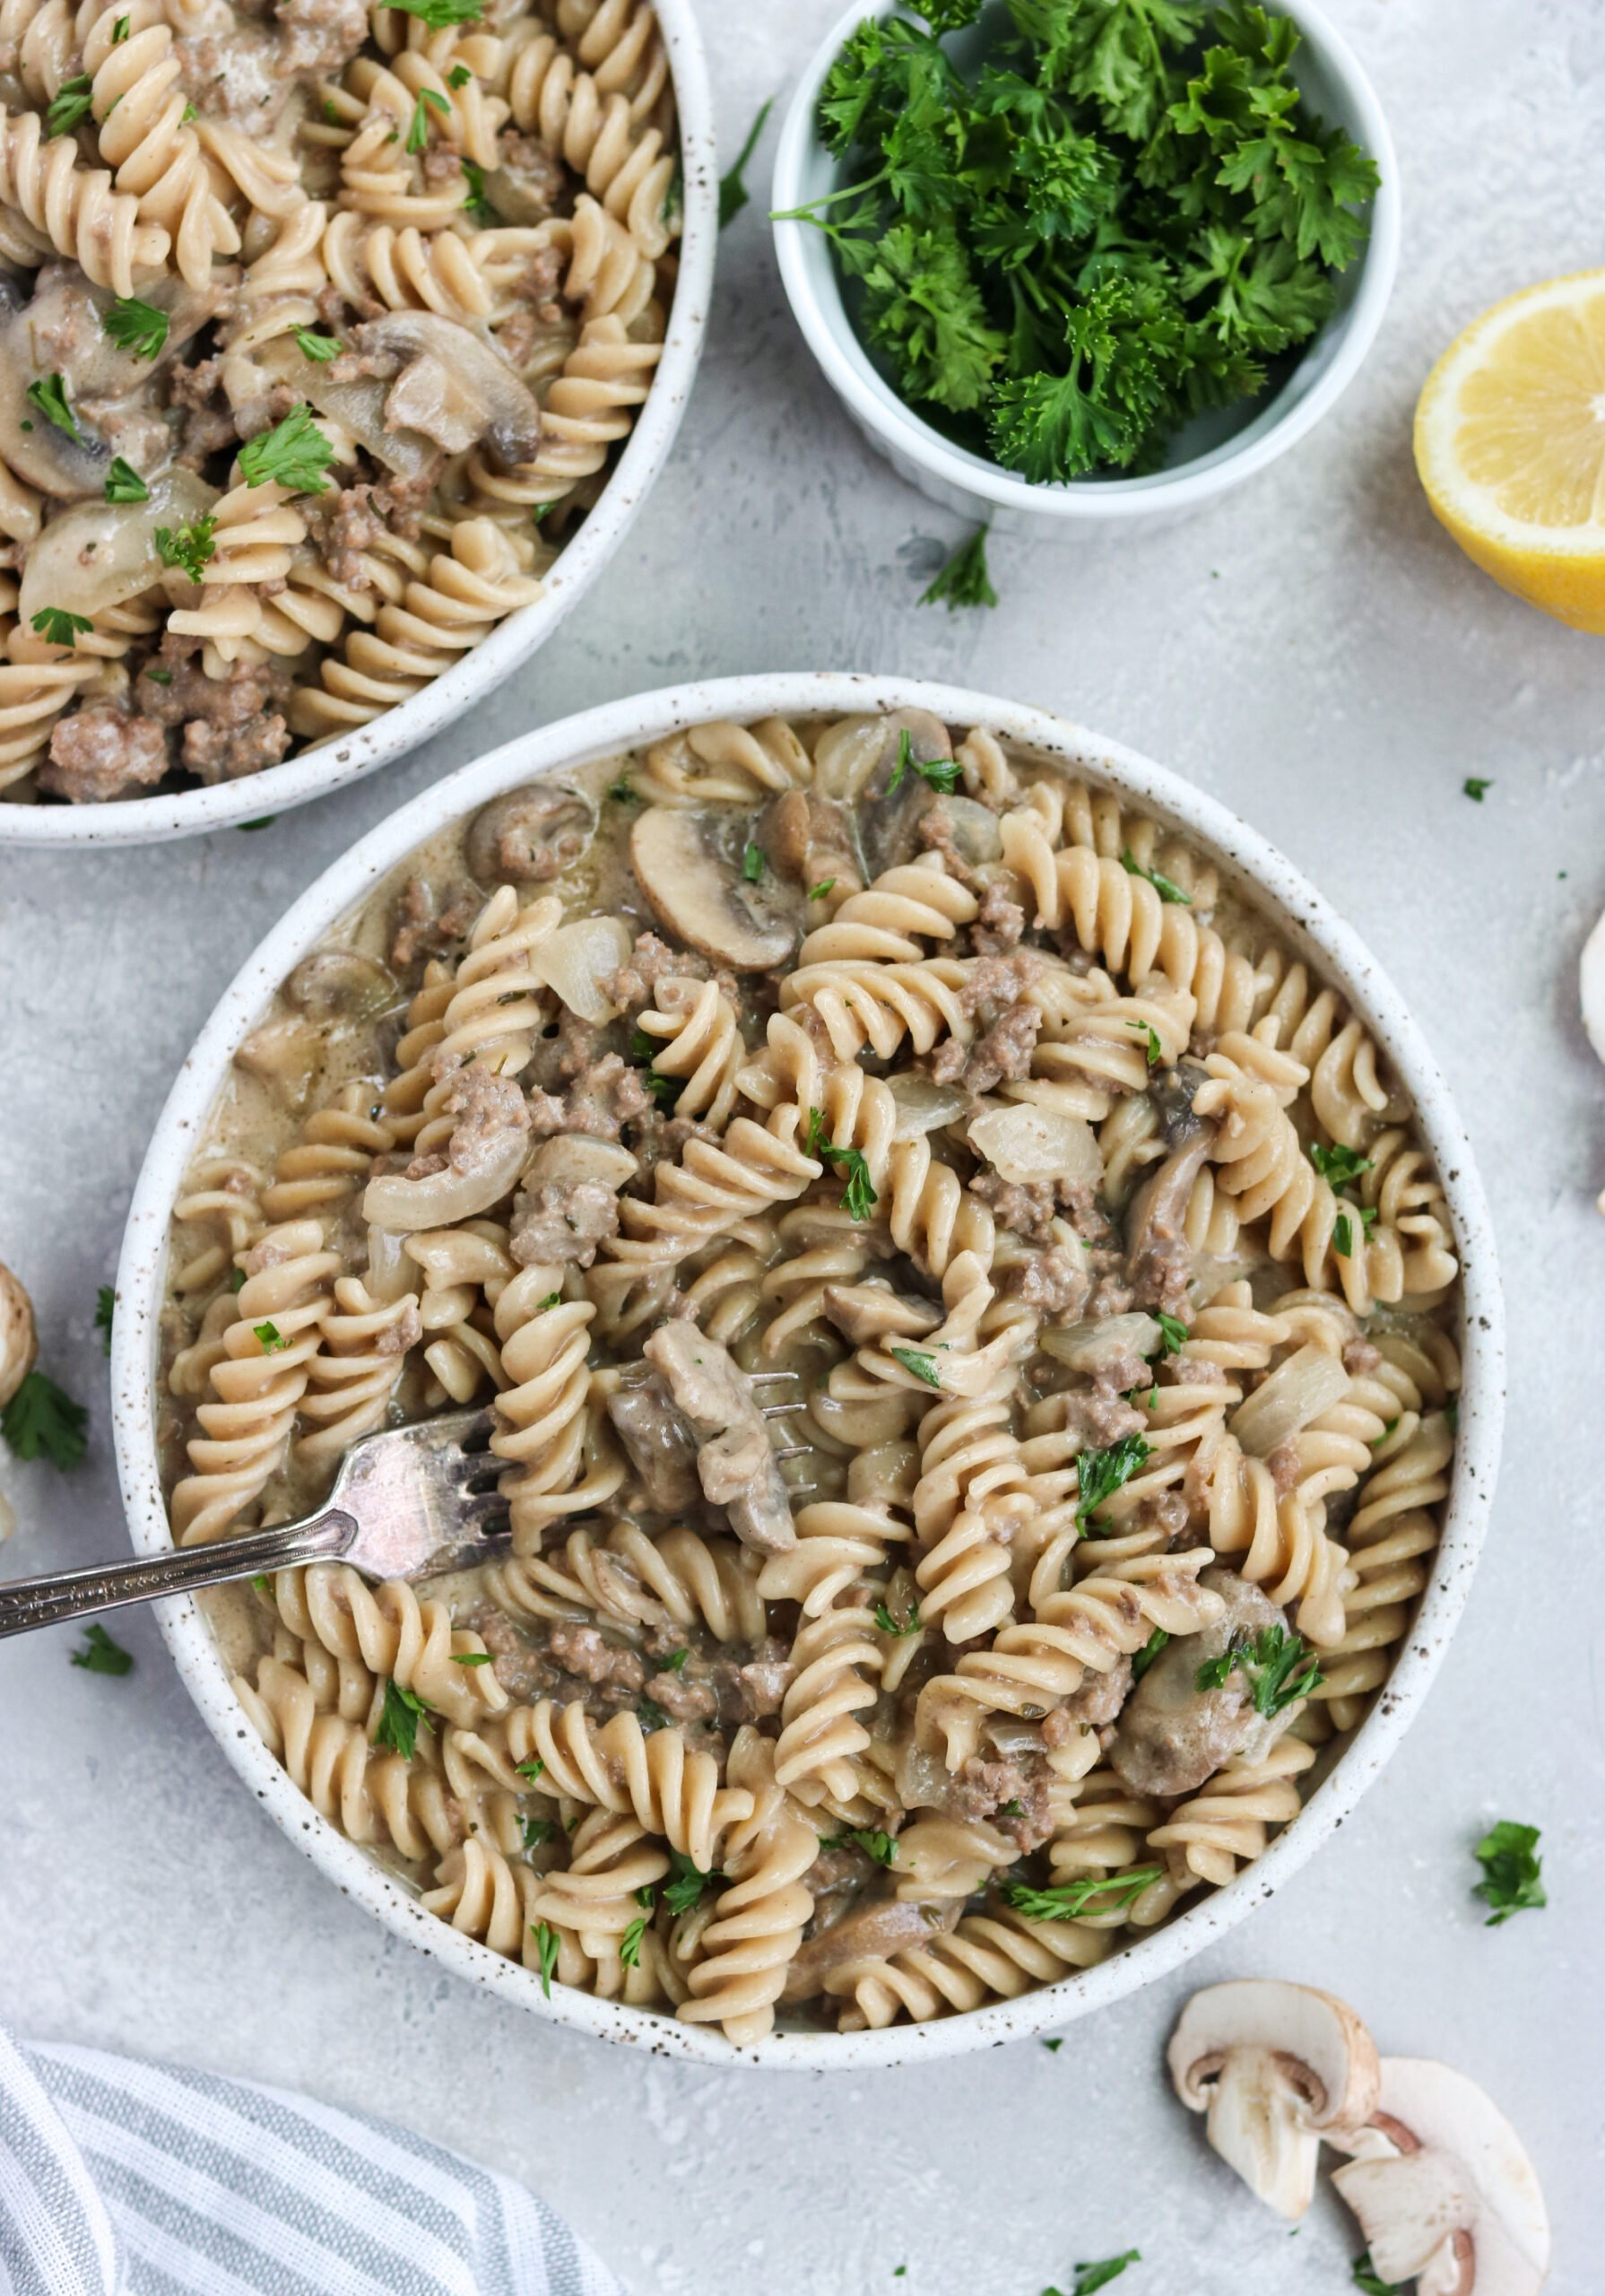 overhead view of noodles in stroganoff sauce in two white bowls with an antique fork next to a pinch bowl of parsley and half a lemon